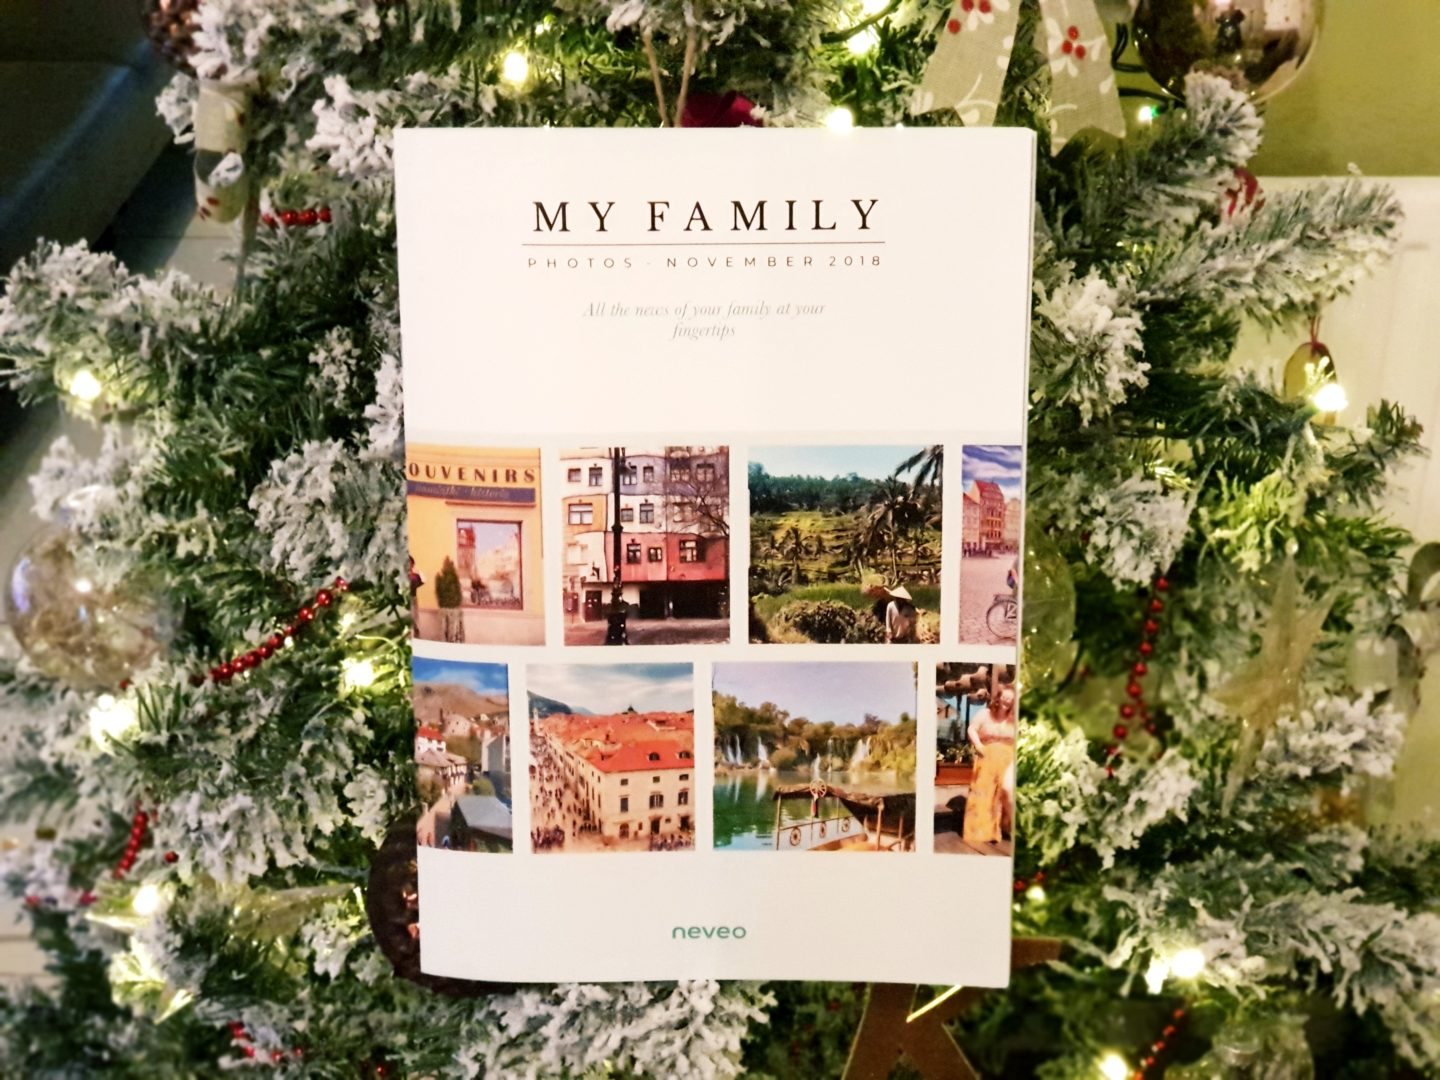 The Perfect Gift For Travel Lovers To Give To Their Family This Christmas | Neveo | Travel